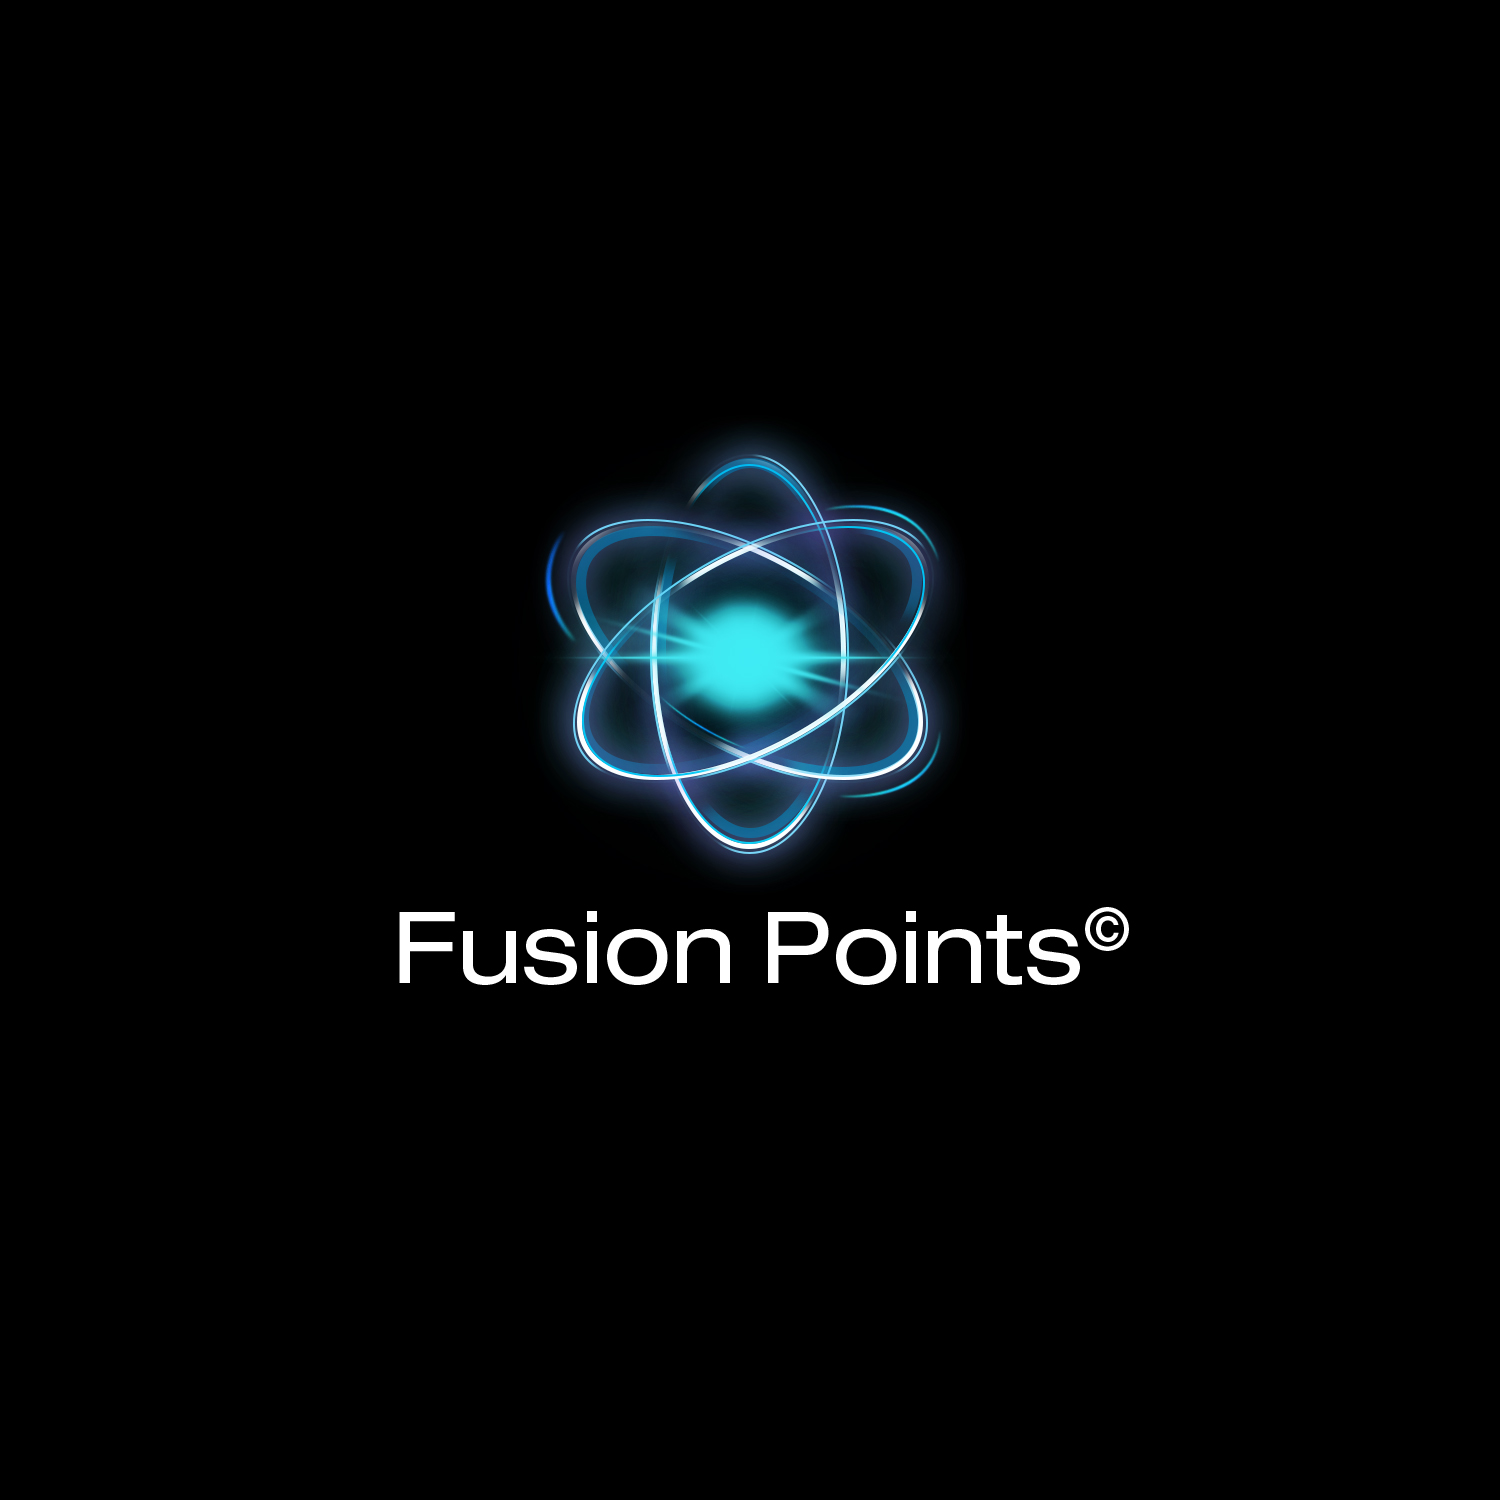 Create Fusion Points With Existing Customers